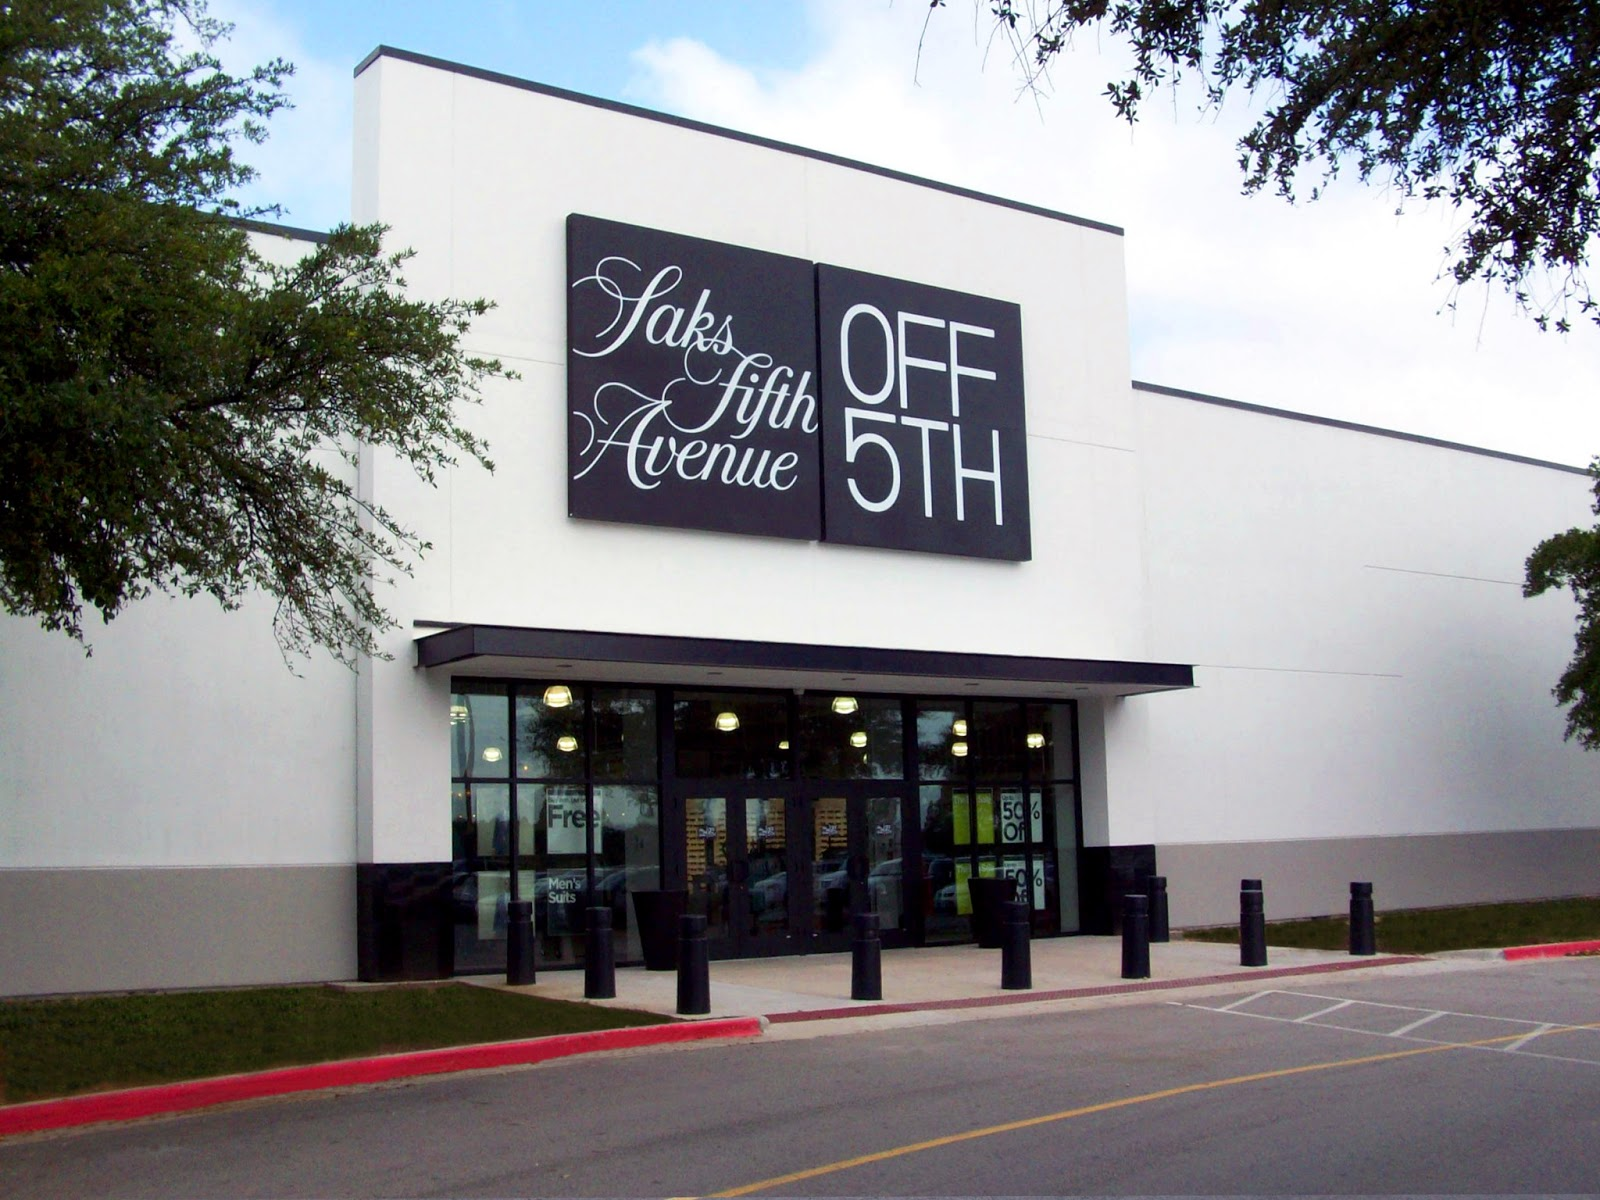 Saks OFF 5TH delivers the deals you crave at a price that can't be beat. With new arrivals every day, more than locations and an easy - to - shop website, OFF 5TH is a totally unique (and convenient) shopping experience.